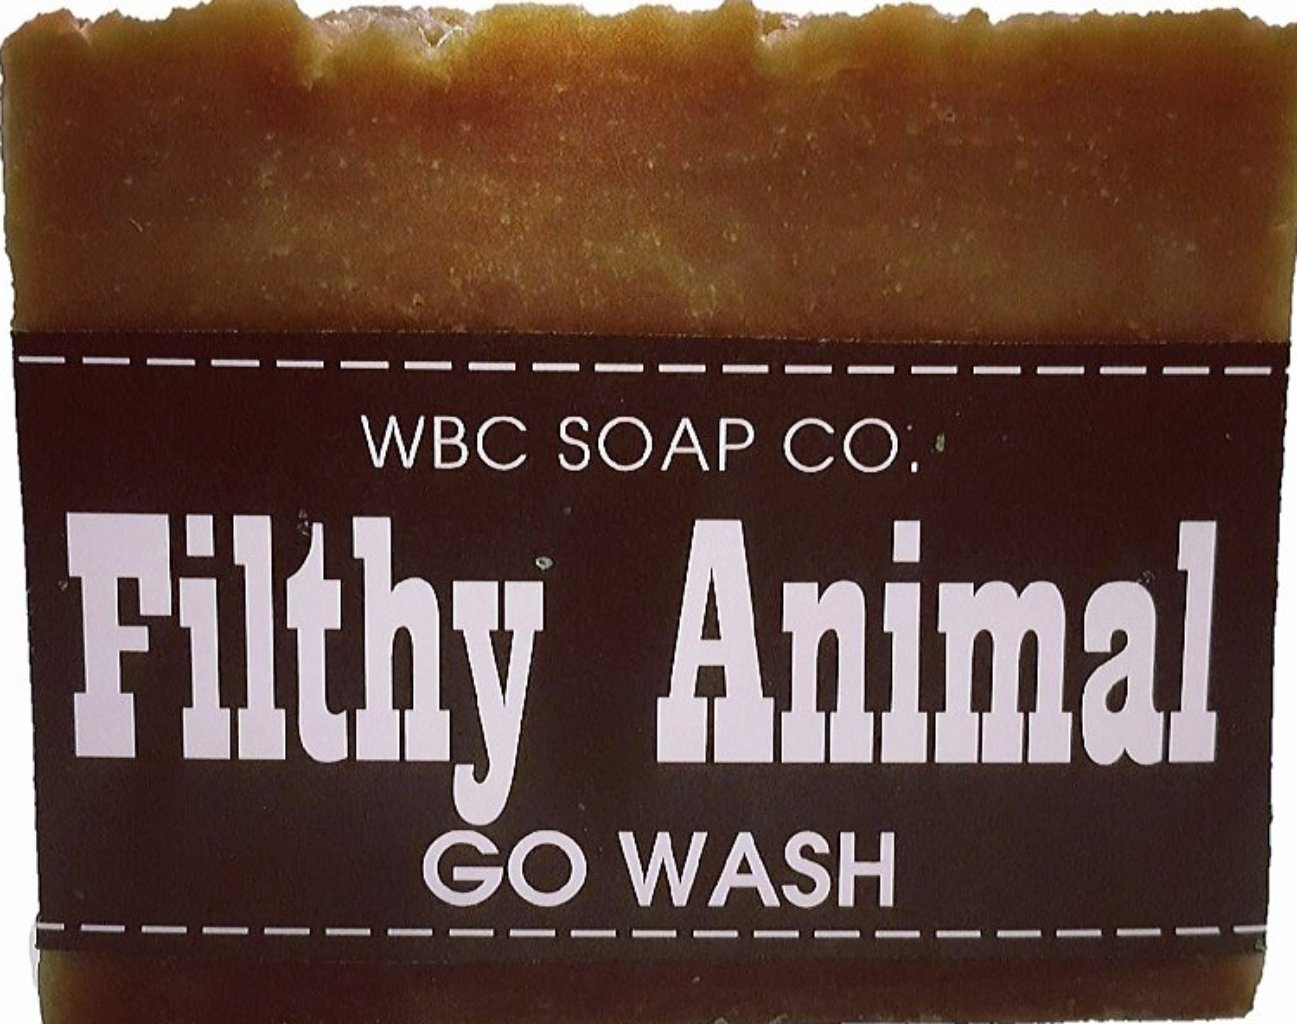 Filthy Animal - WBC SOAP CO.